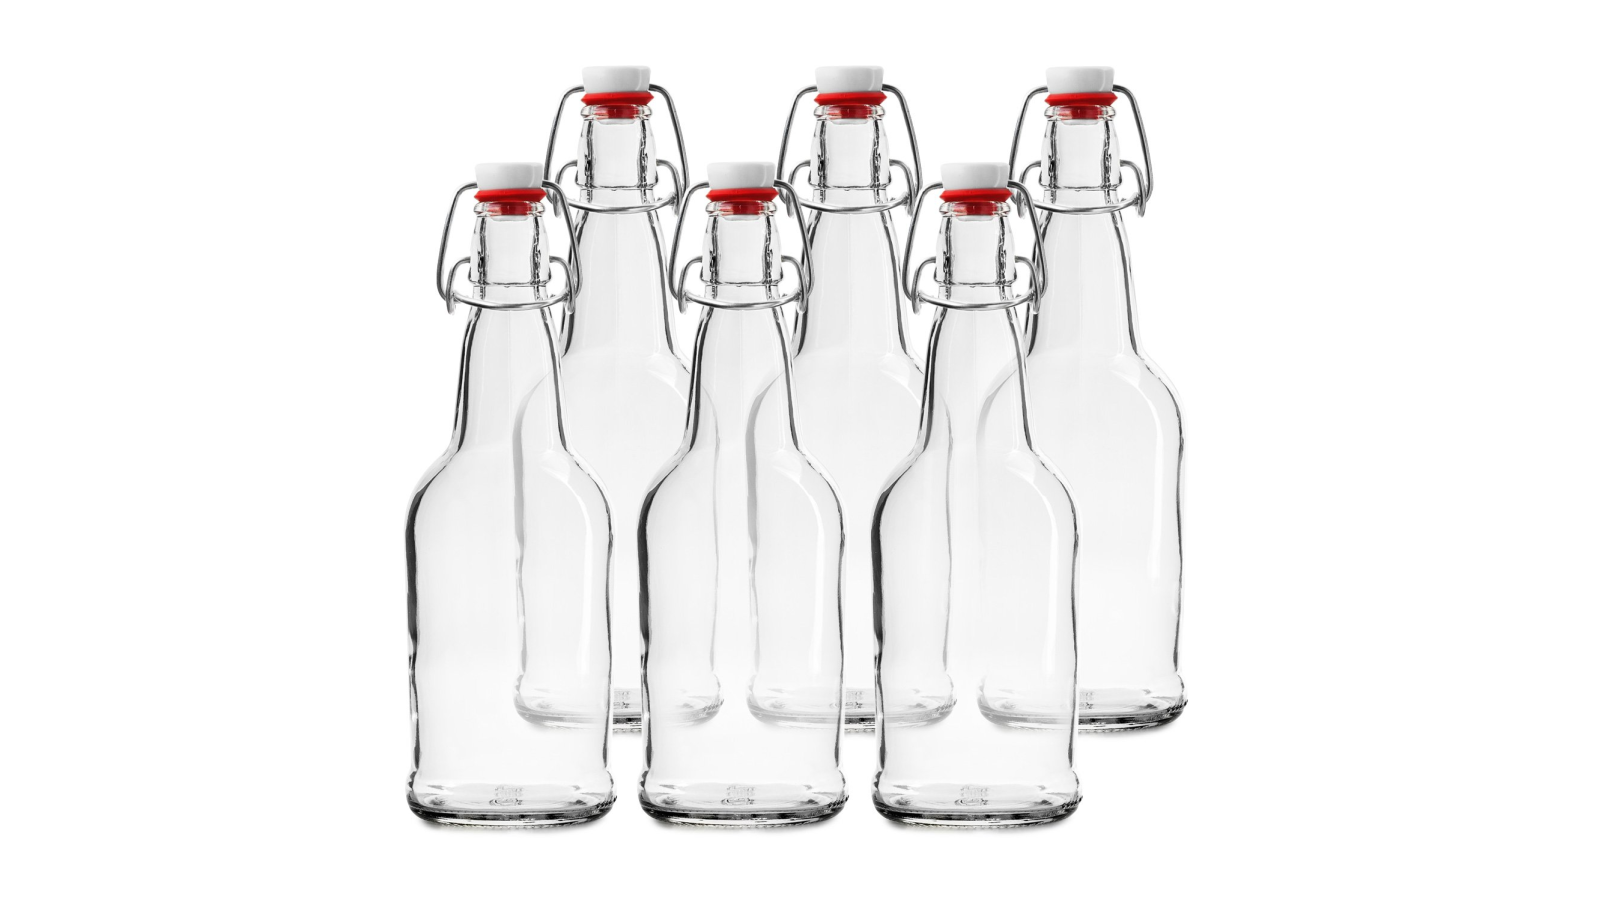 Store your homemade brews in this 6-pack of glass bottles for $13.50 Prime shipped (Reg. $20)